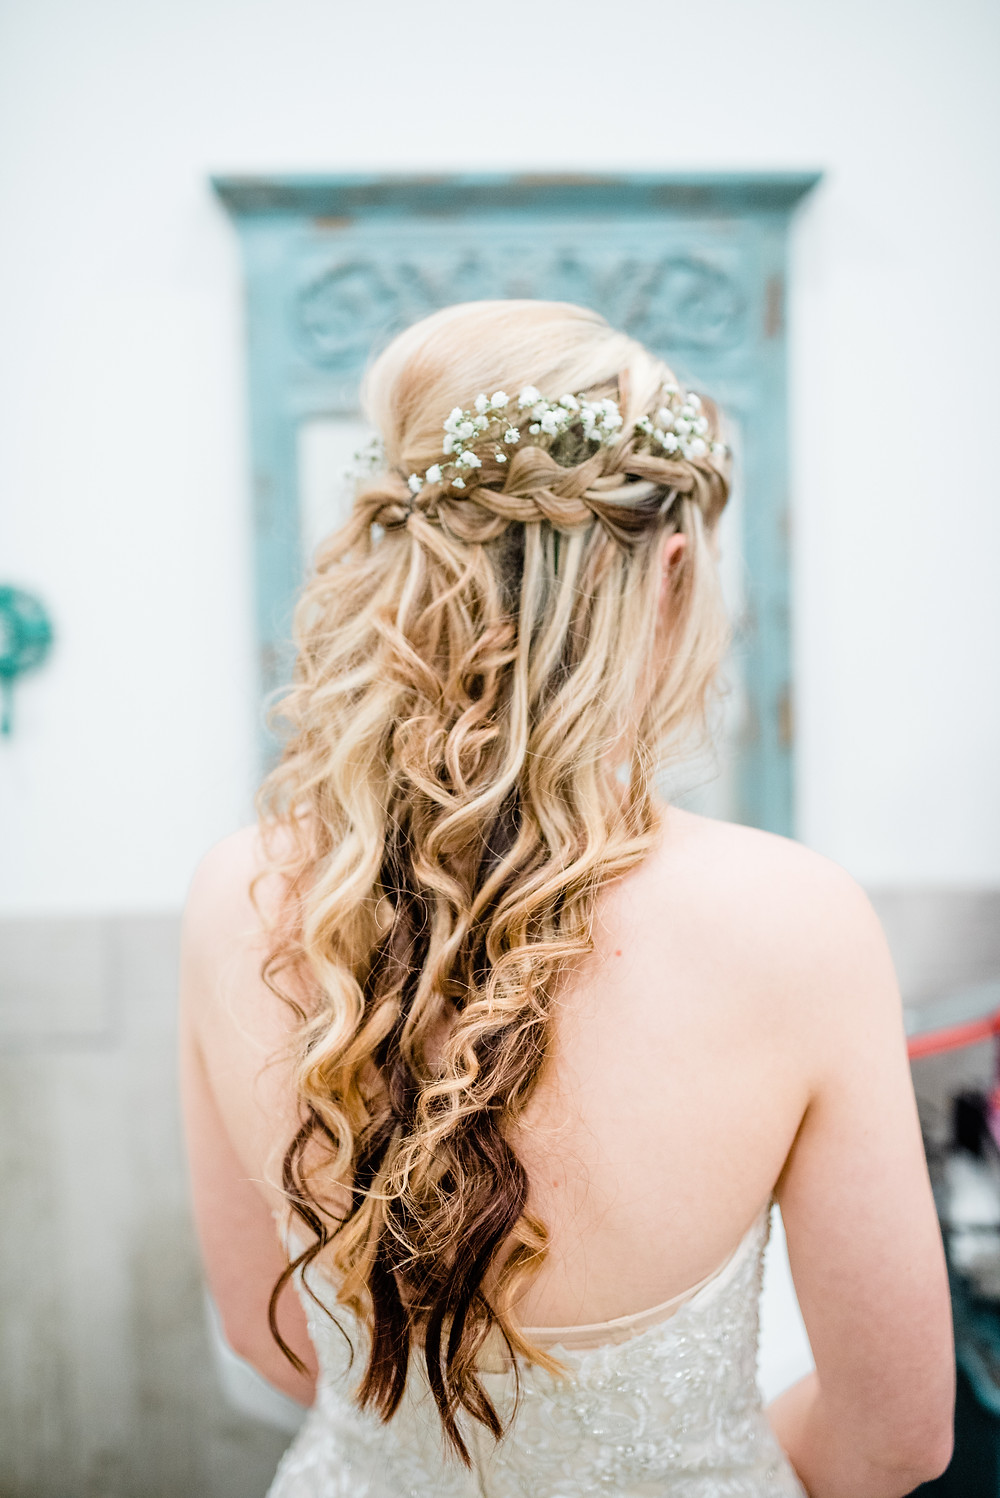 curled bridal Hair style with baby's breath